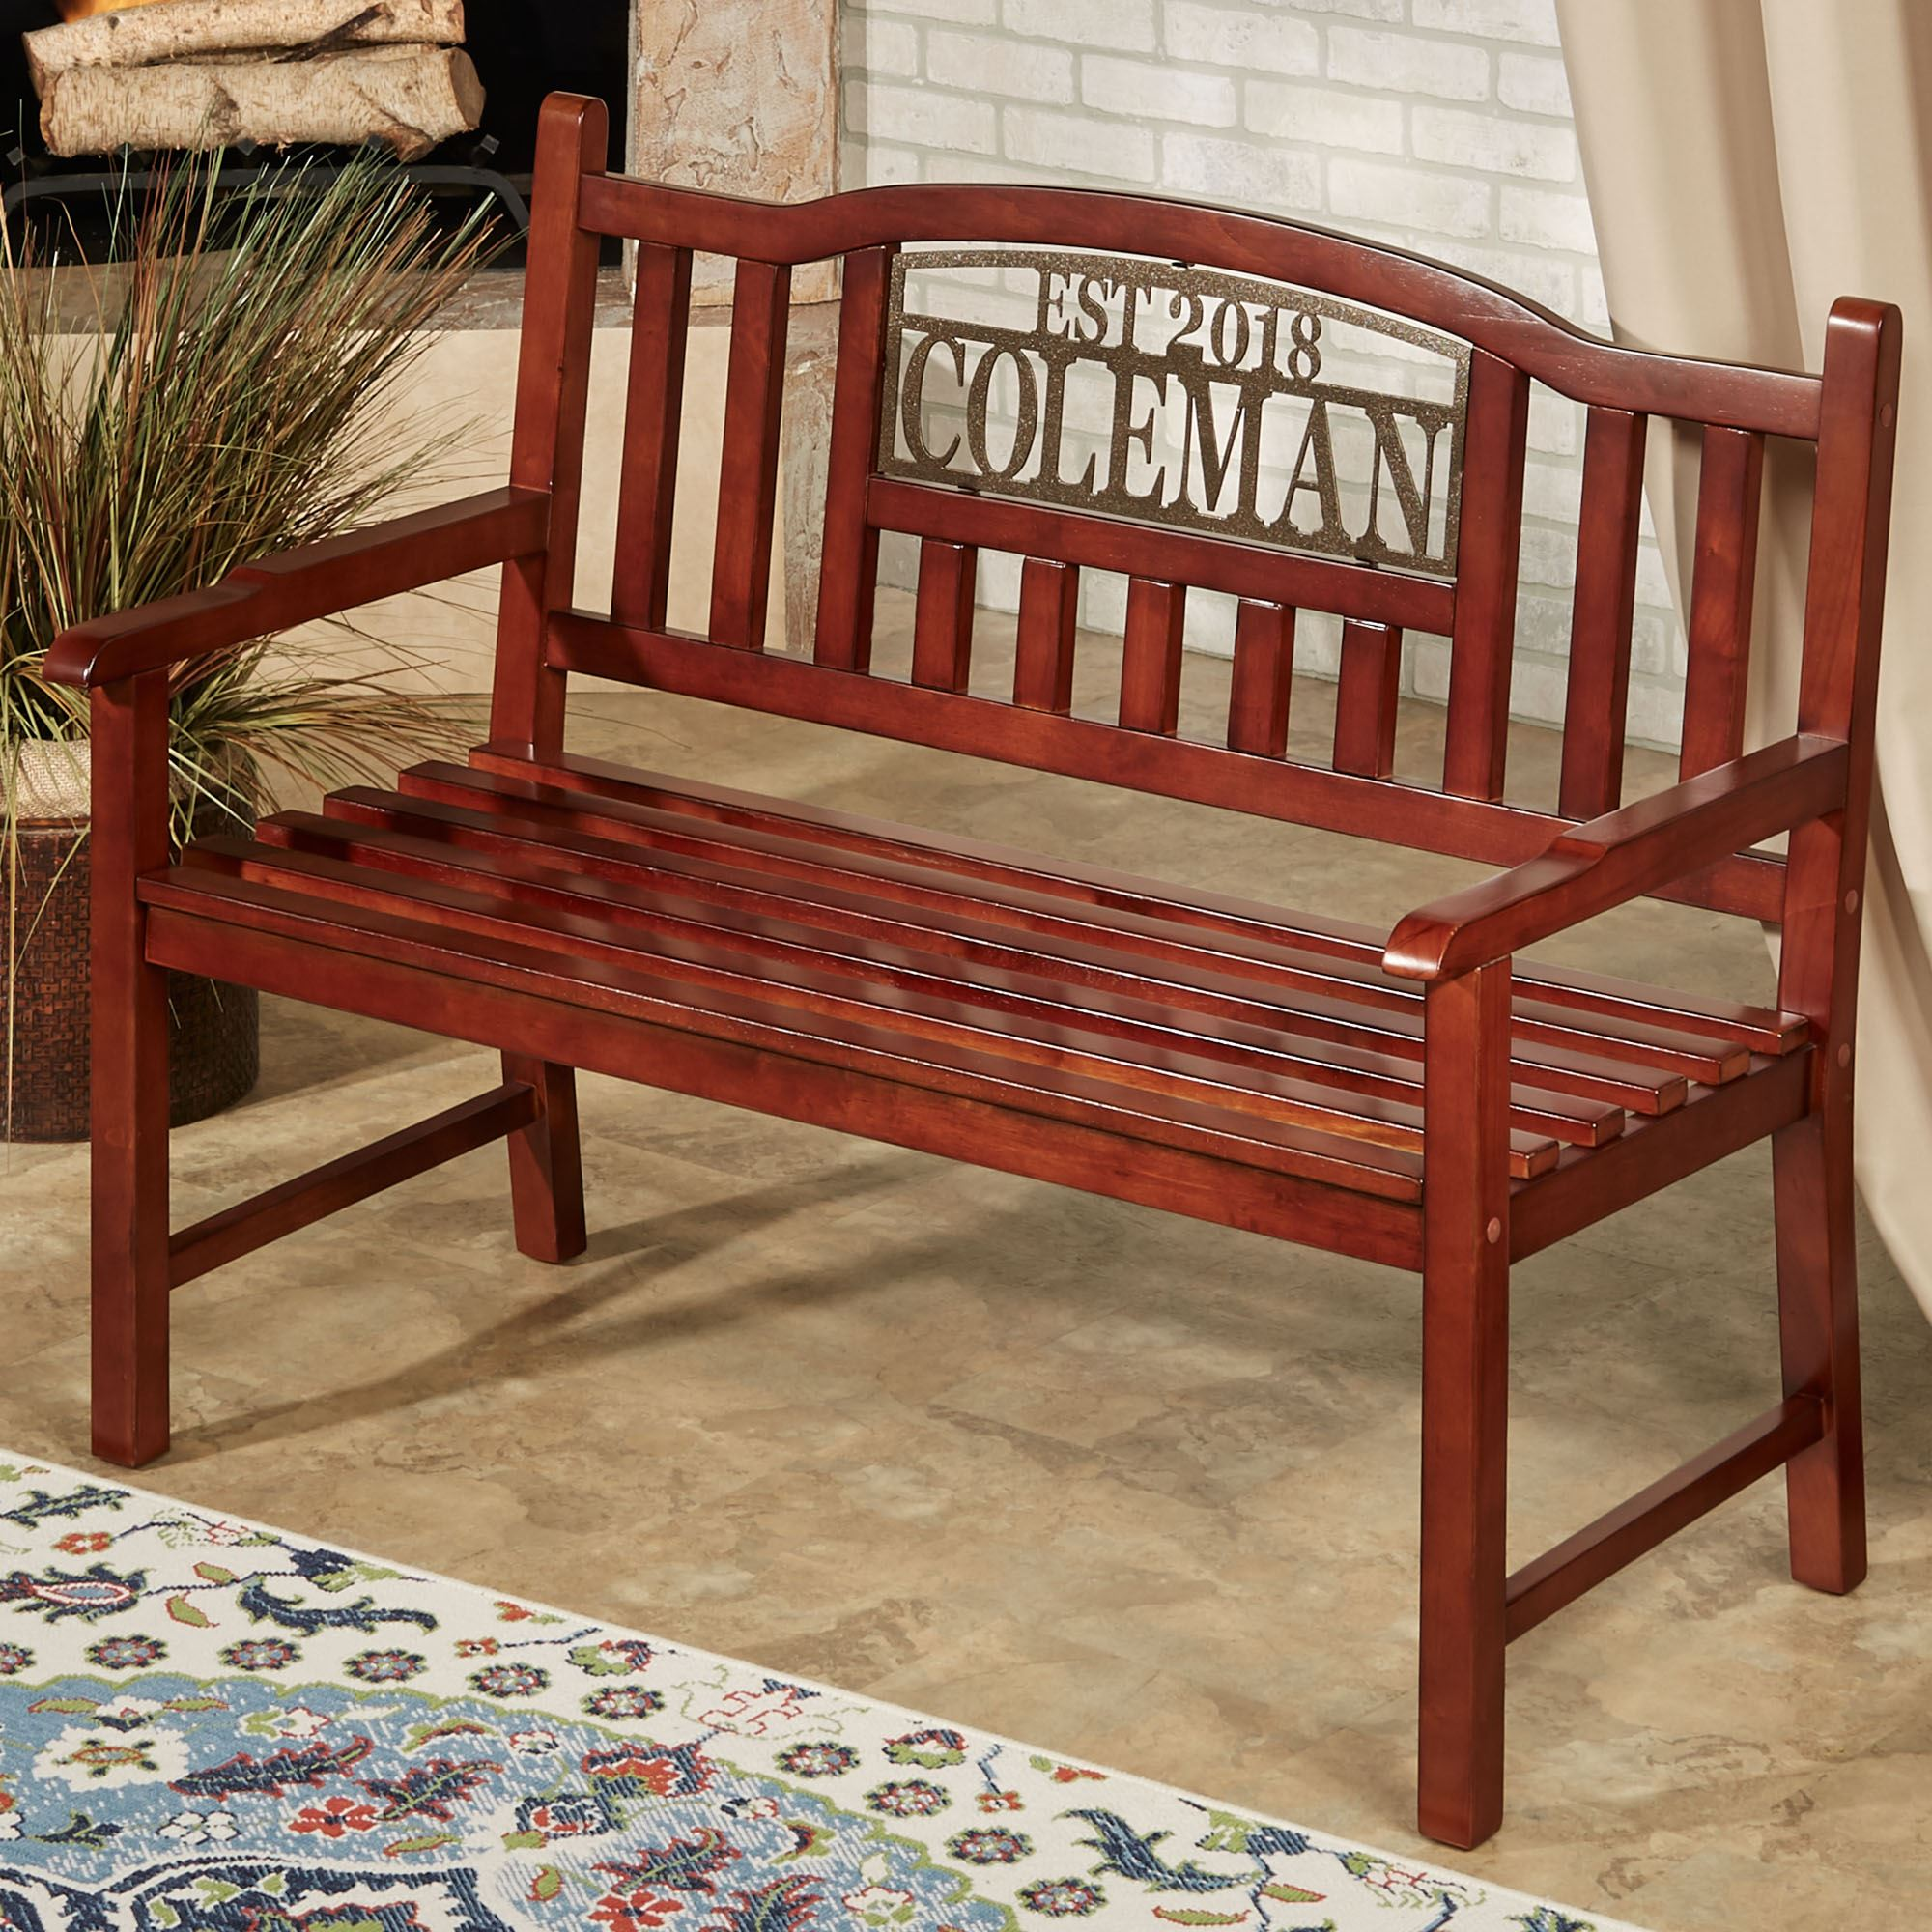 Stonehill Personalized Outdoor Bench